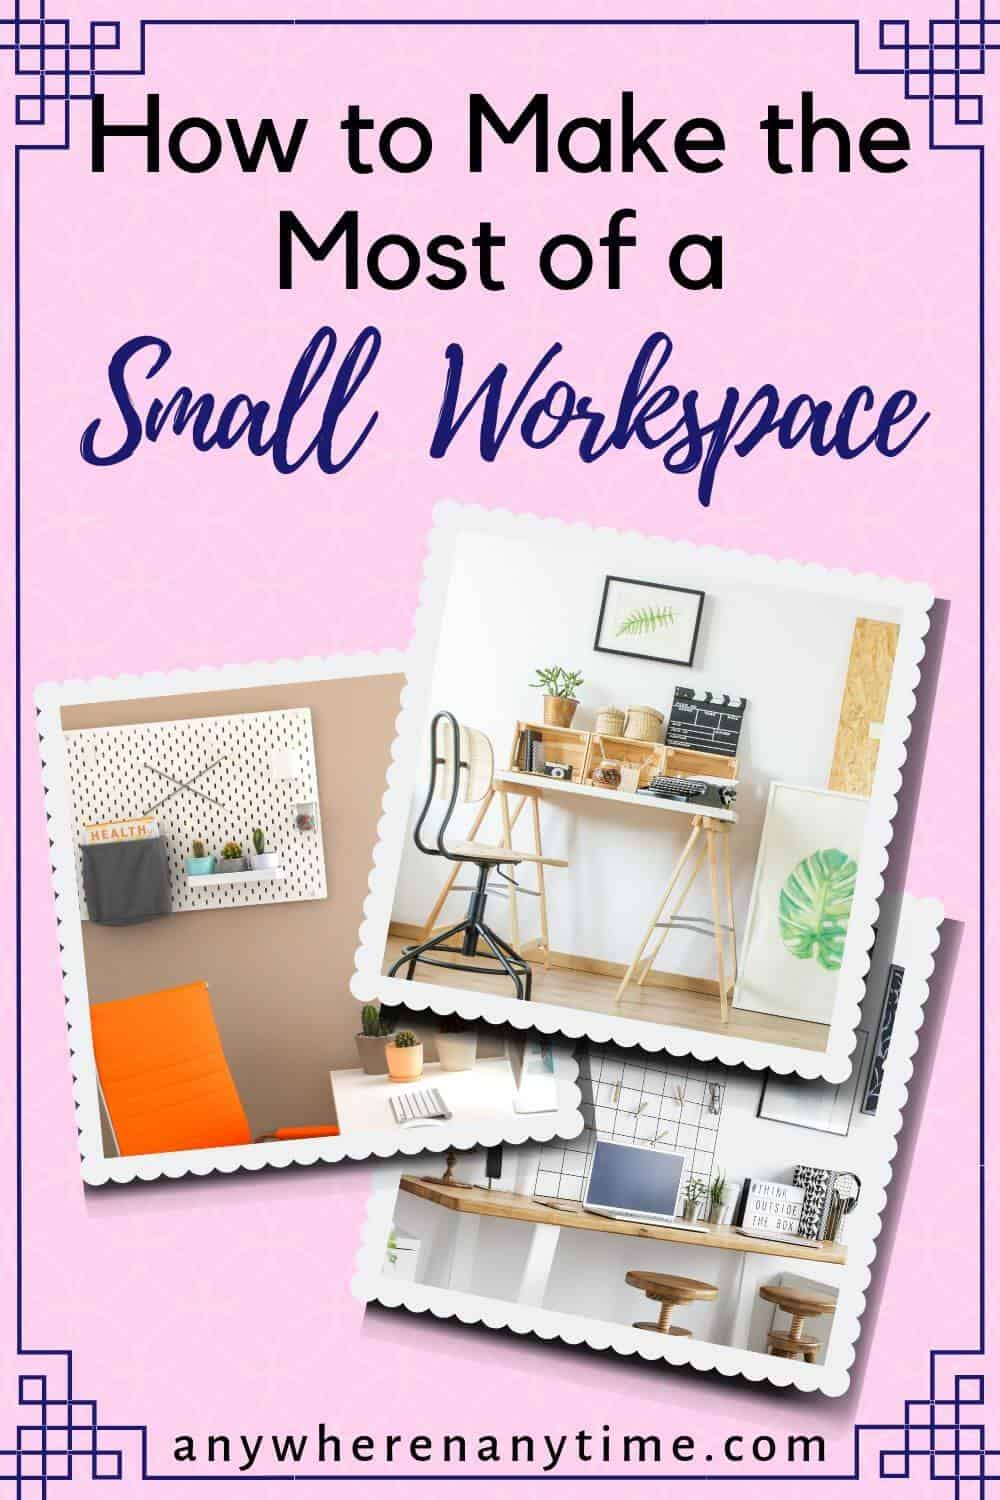 Need some home workspace ideas? Whether you need to convert your living room into a home office, or convert a nook in your house DIY style, these hacks for making the most out of your existing living space will help you to crush it in your business from home!